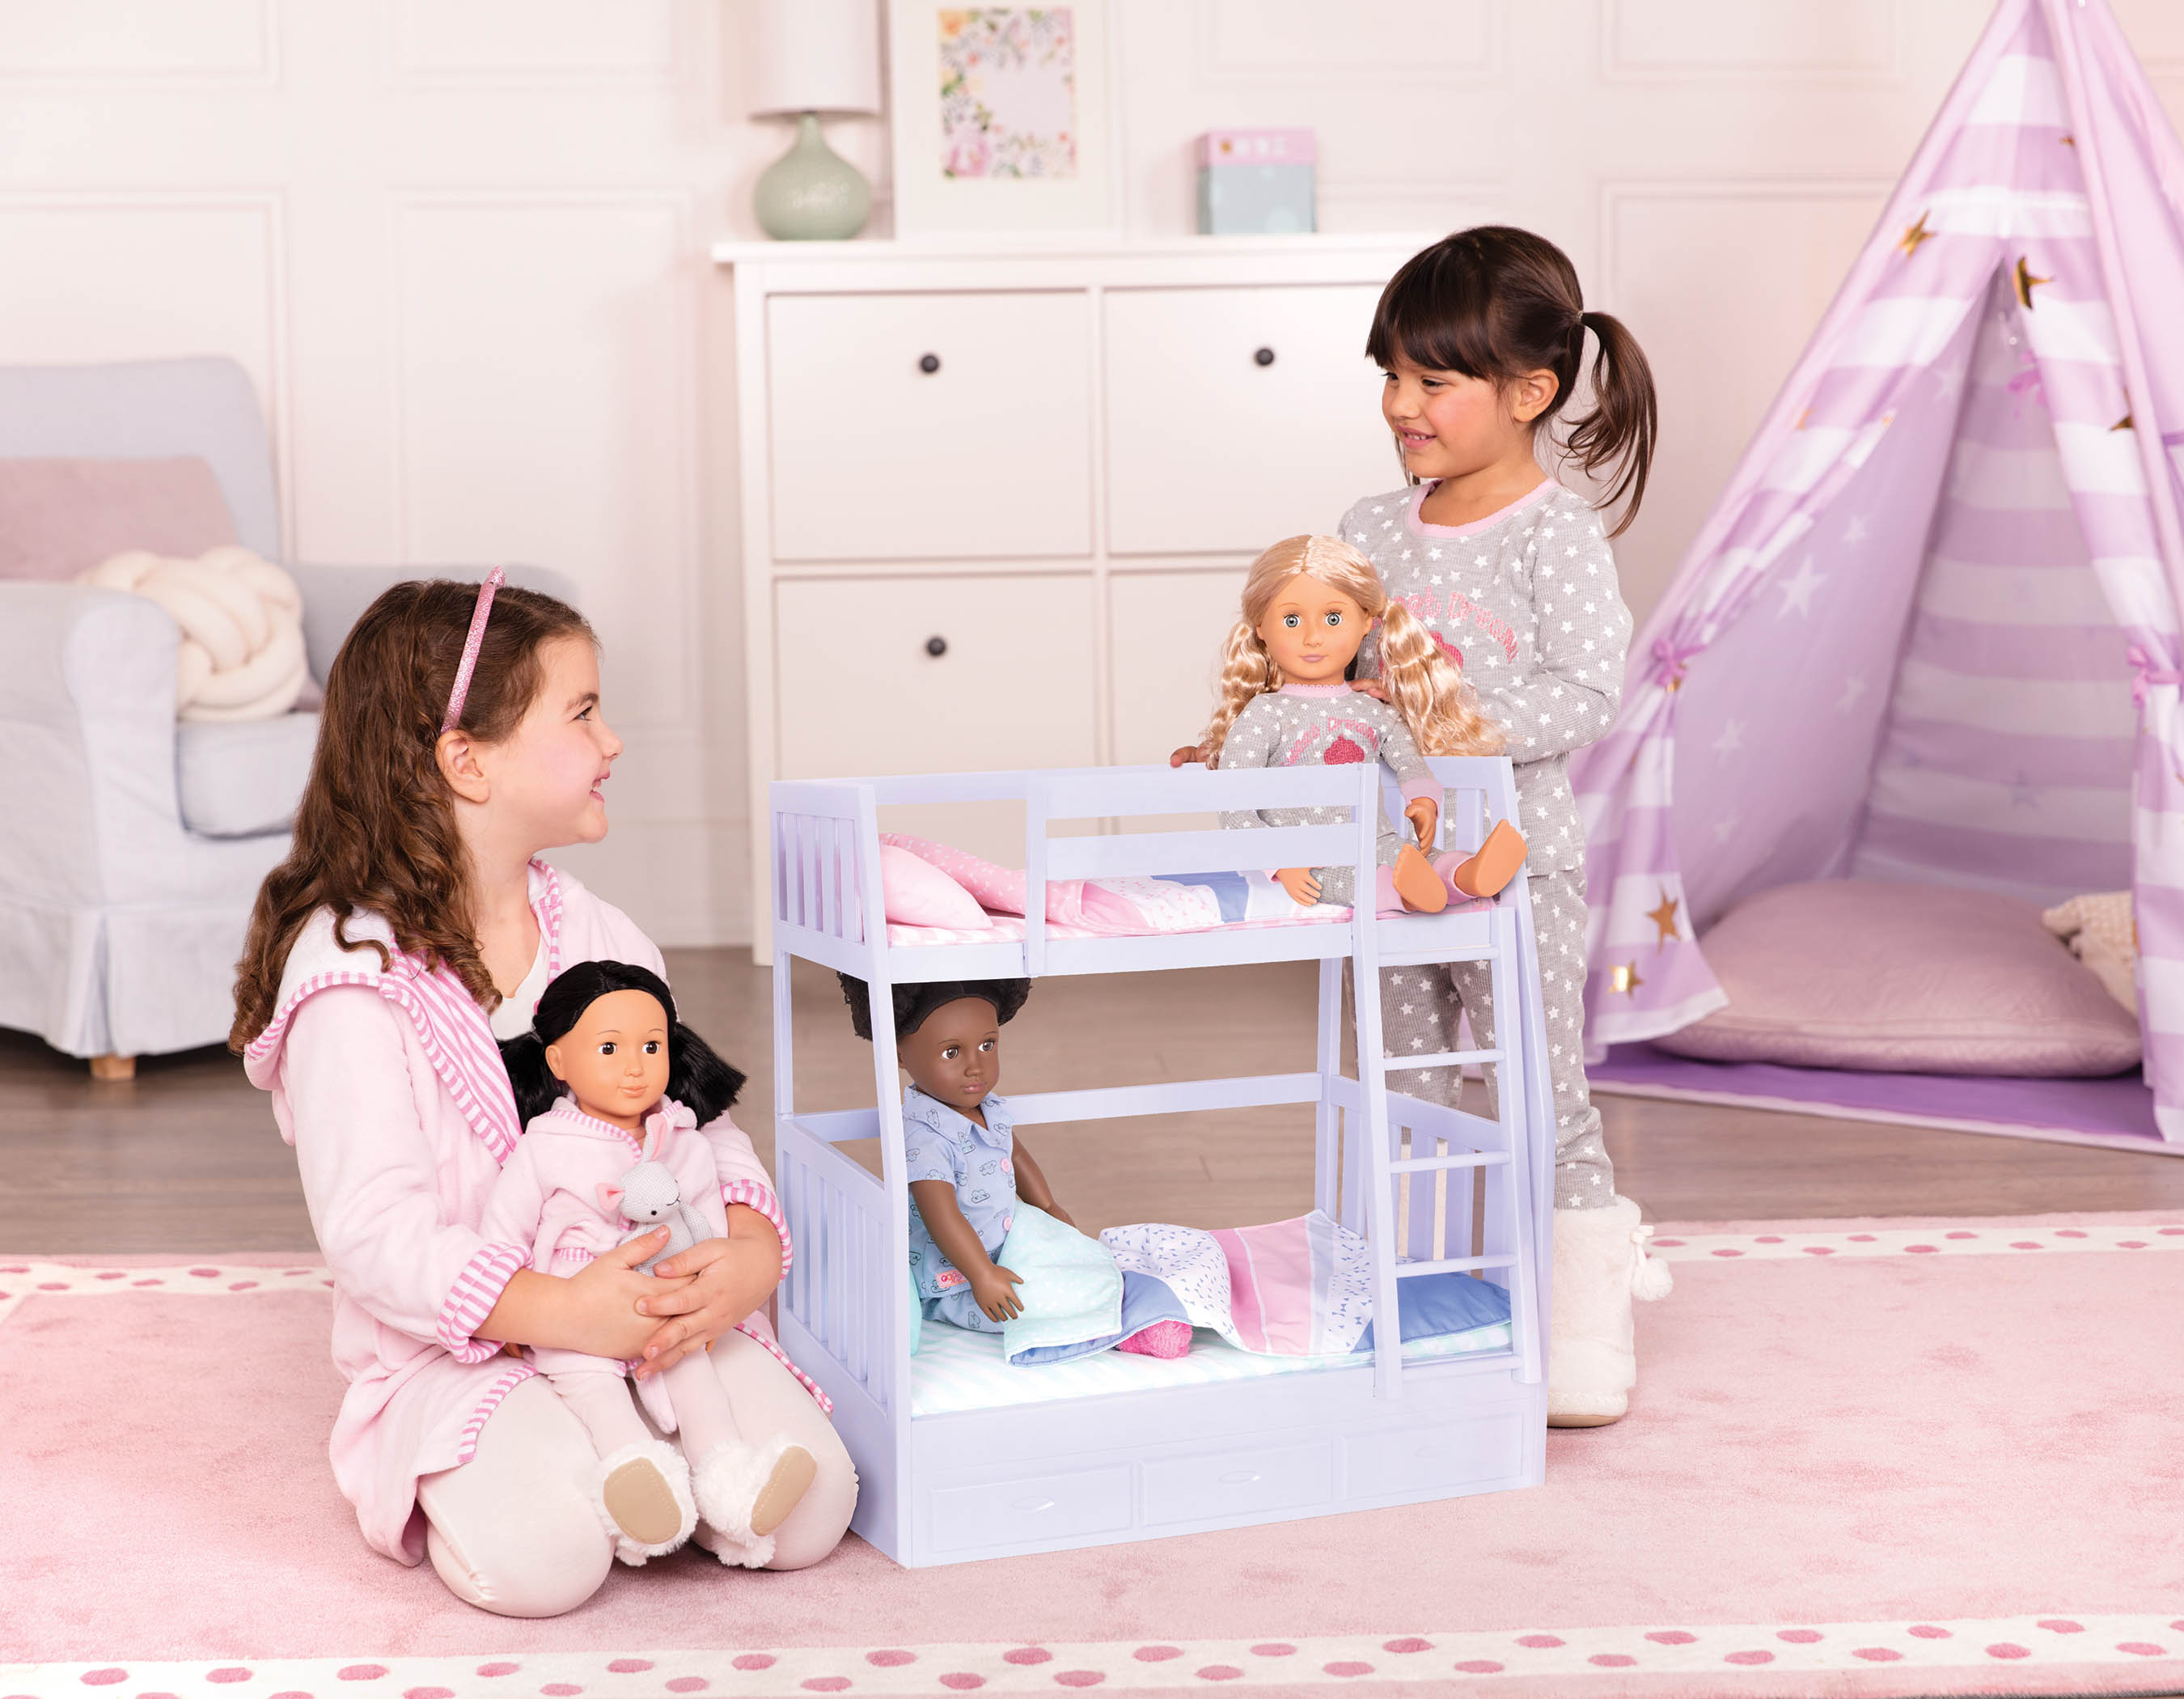 12 Steps for the Perfect Sleepover - Girls playing with OG Dolls at a Sleepover